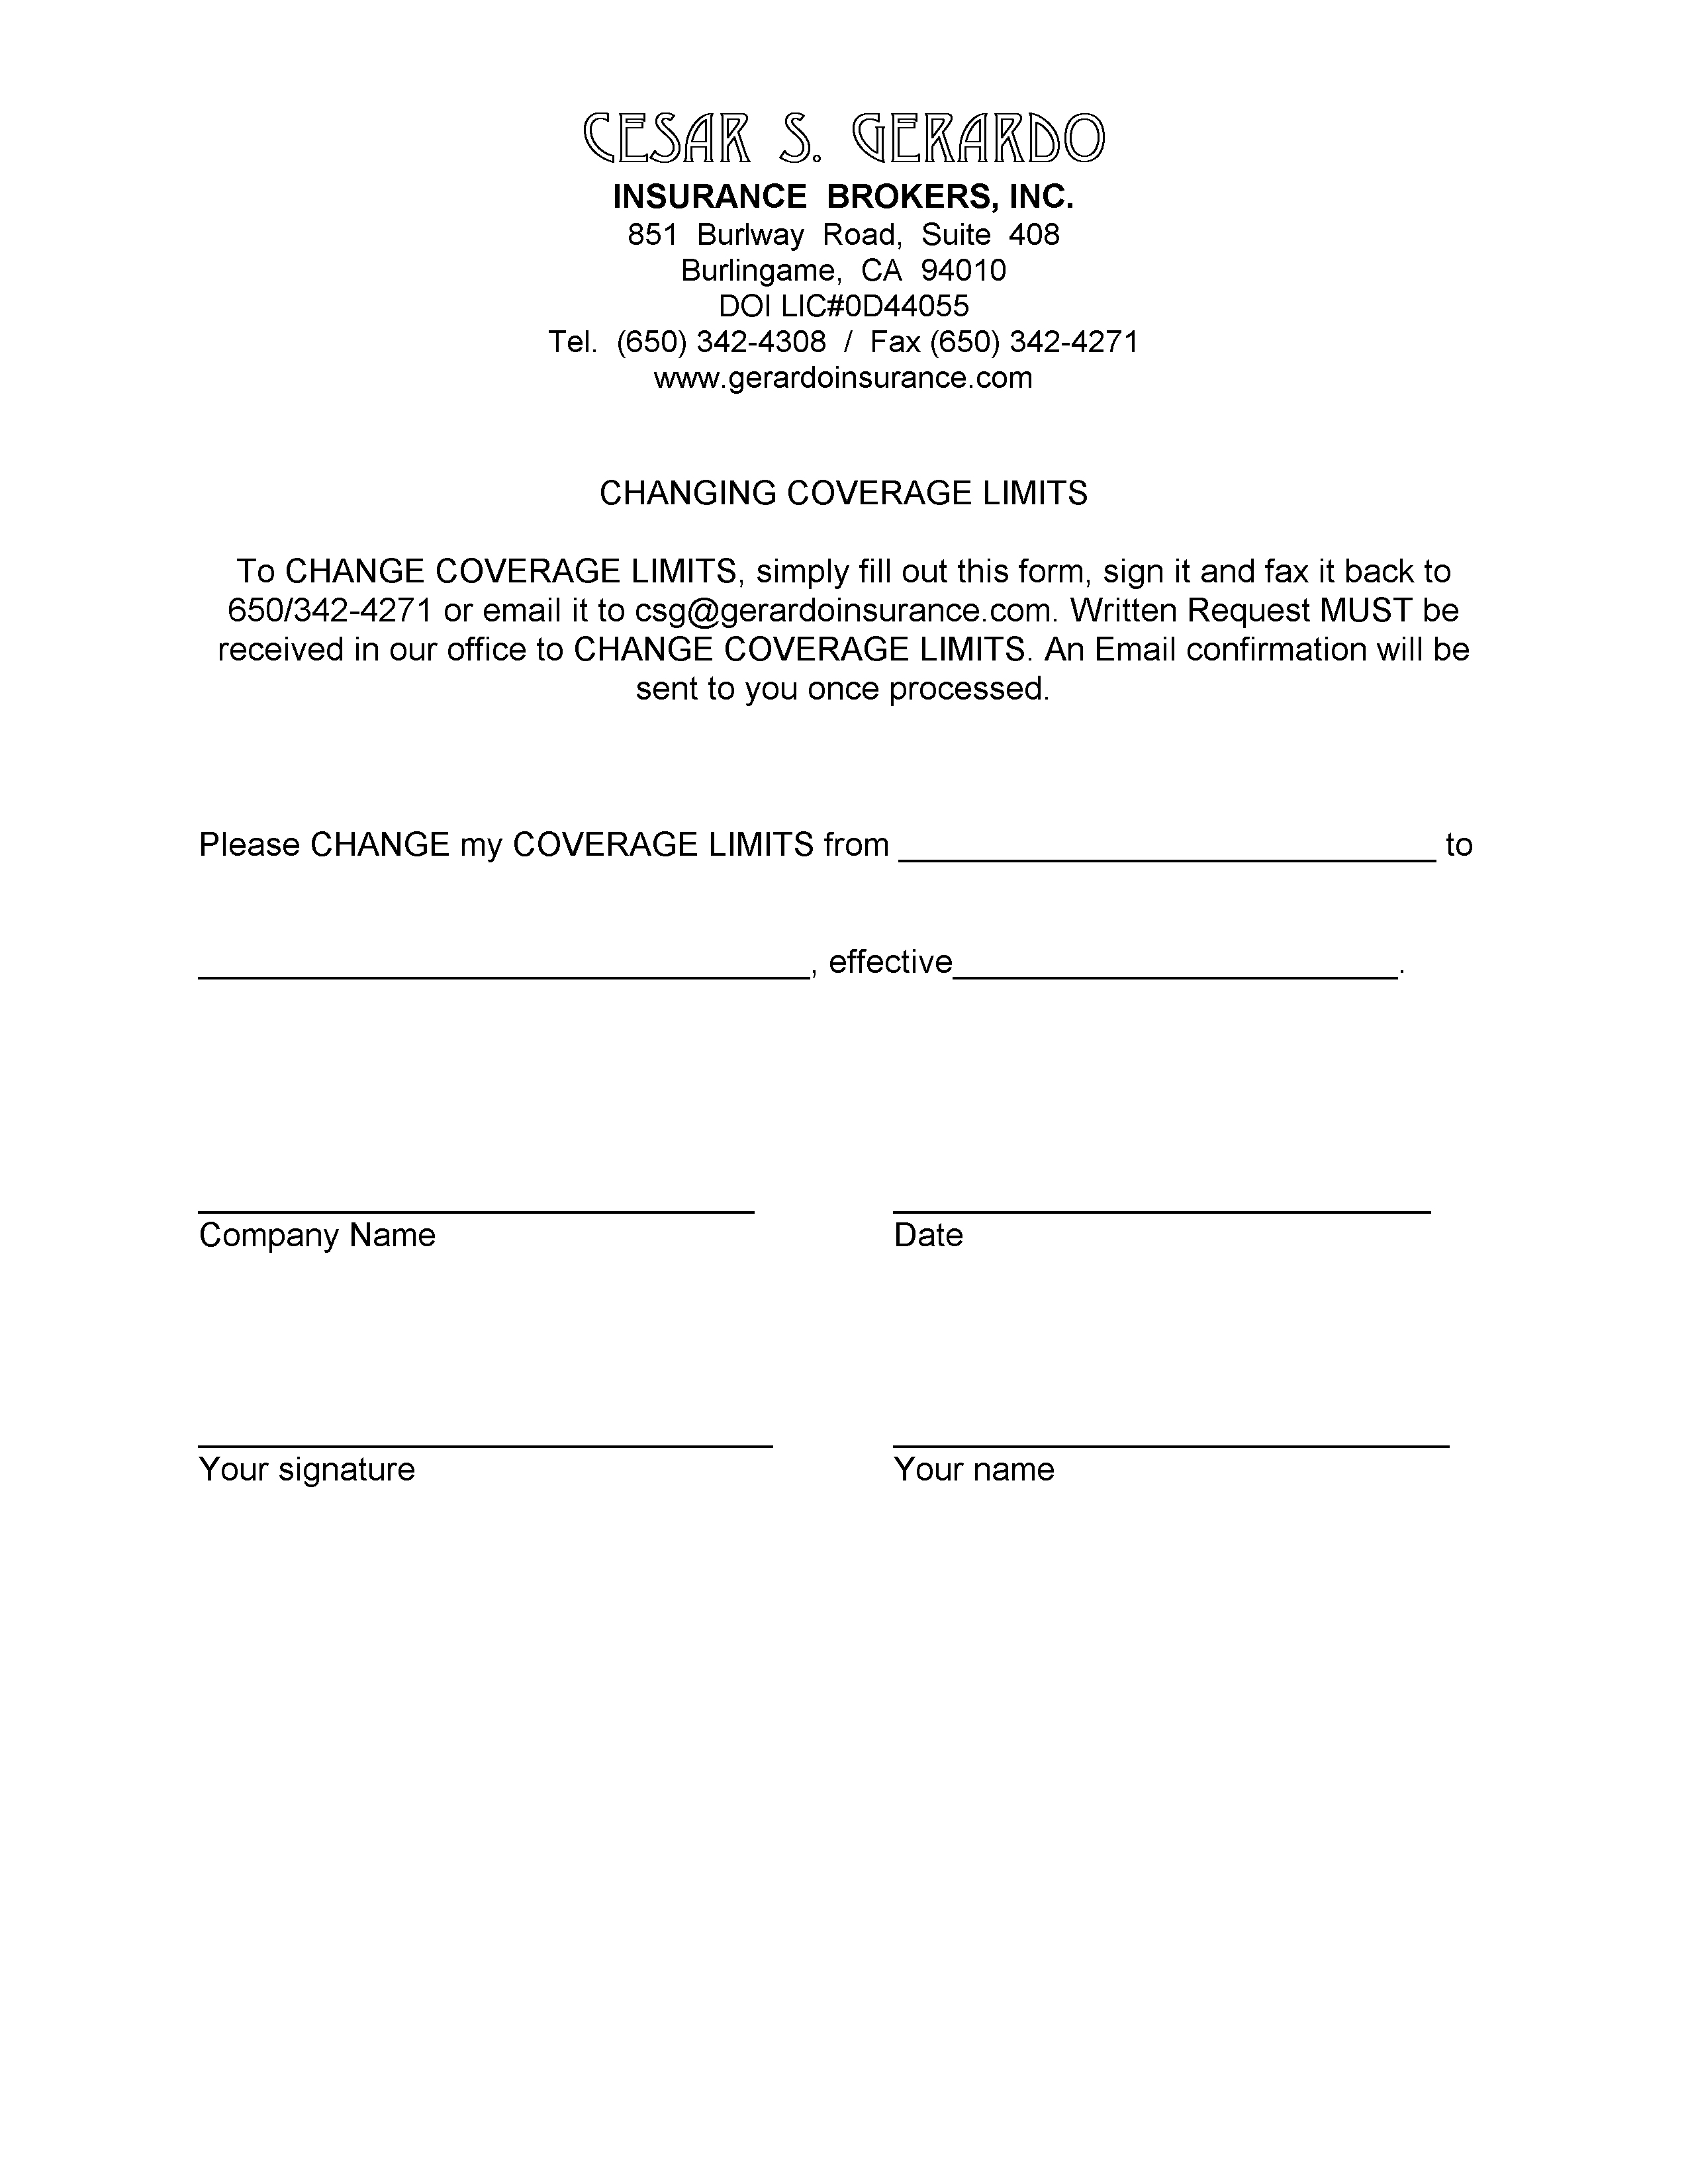 certificate of insurance request form template - liability insurance liability insurance loss payee